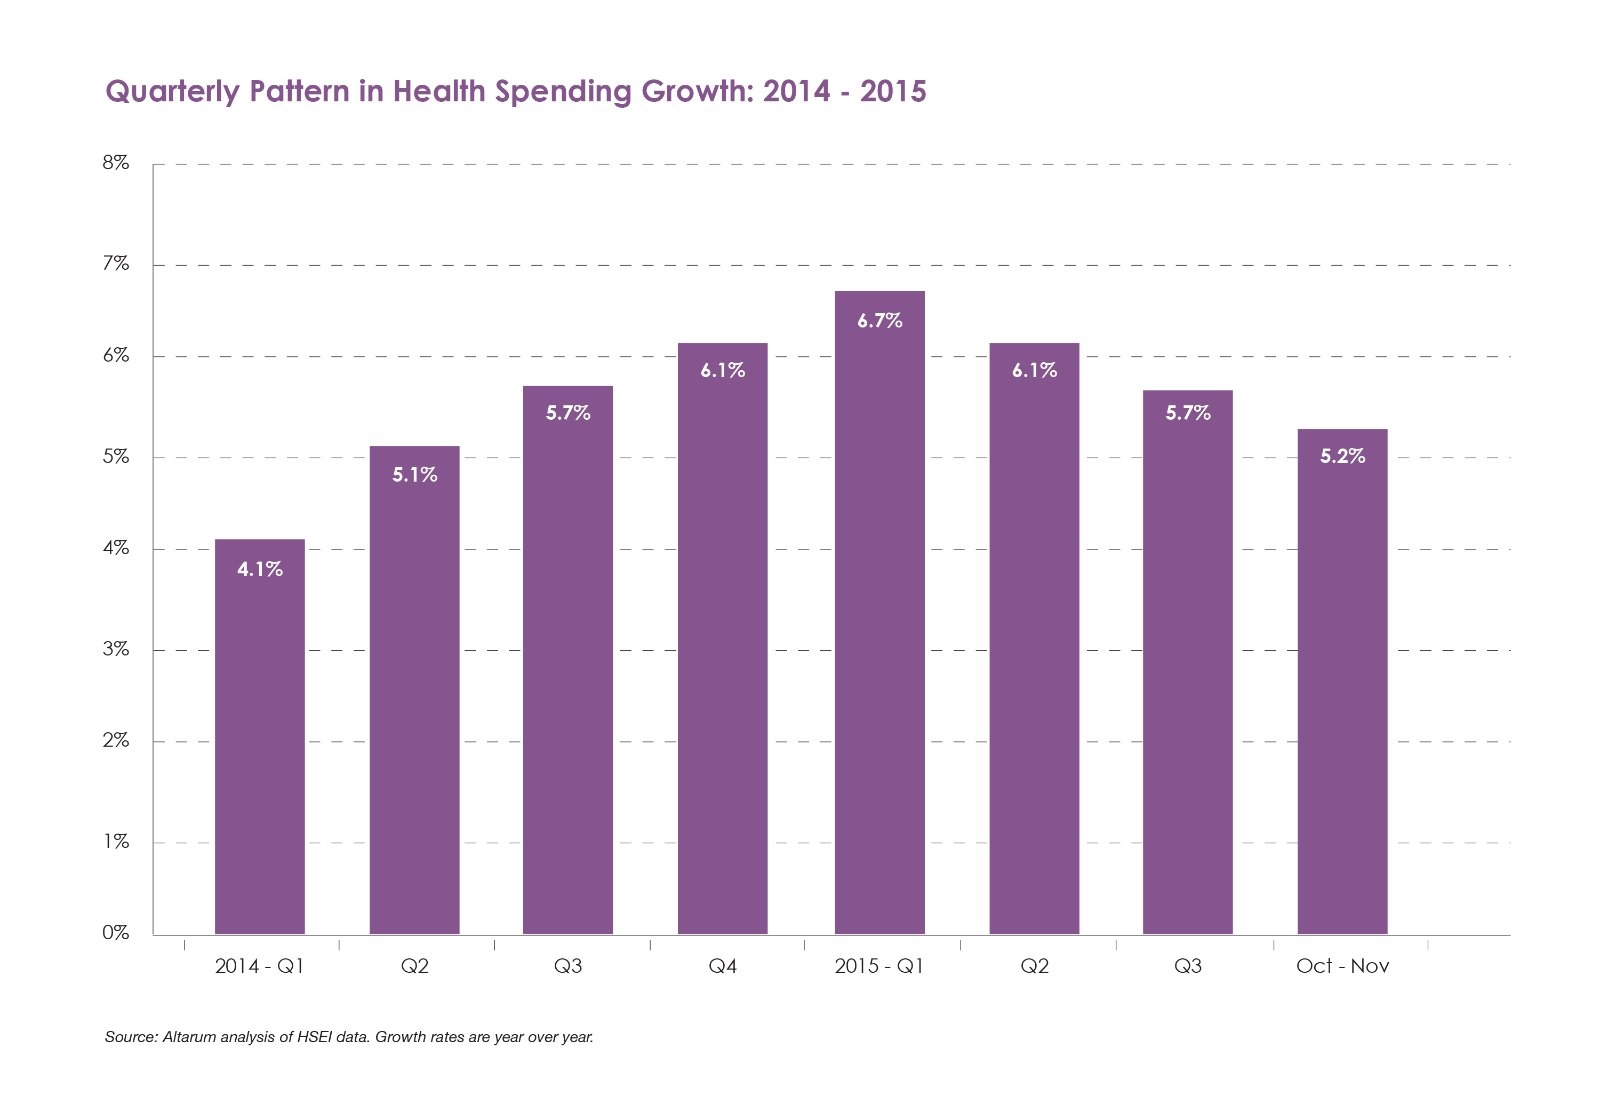 Quarterly Pattern in Health Spending Growth 2014-2015